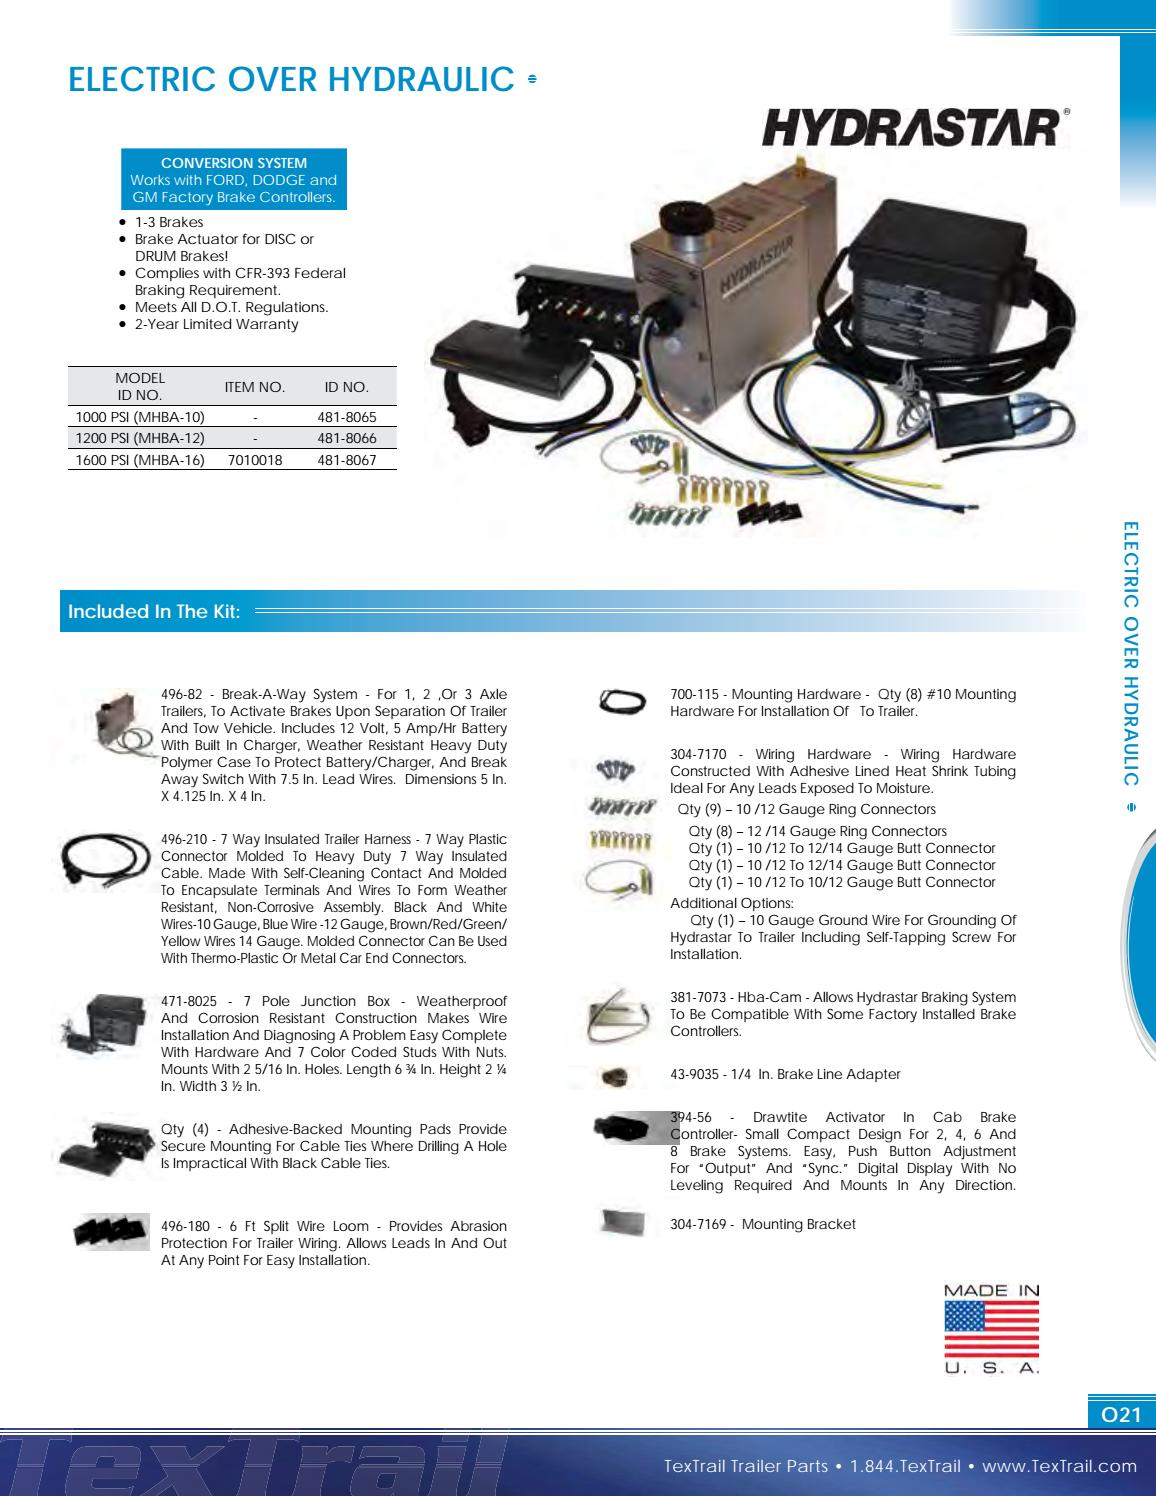 Fabulous Textrail Trailer Parts Catalog By Big Tex Trailers Issuu Wiring Cloud Rectuggs Outletorg